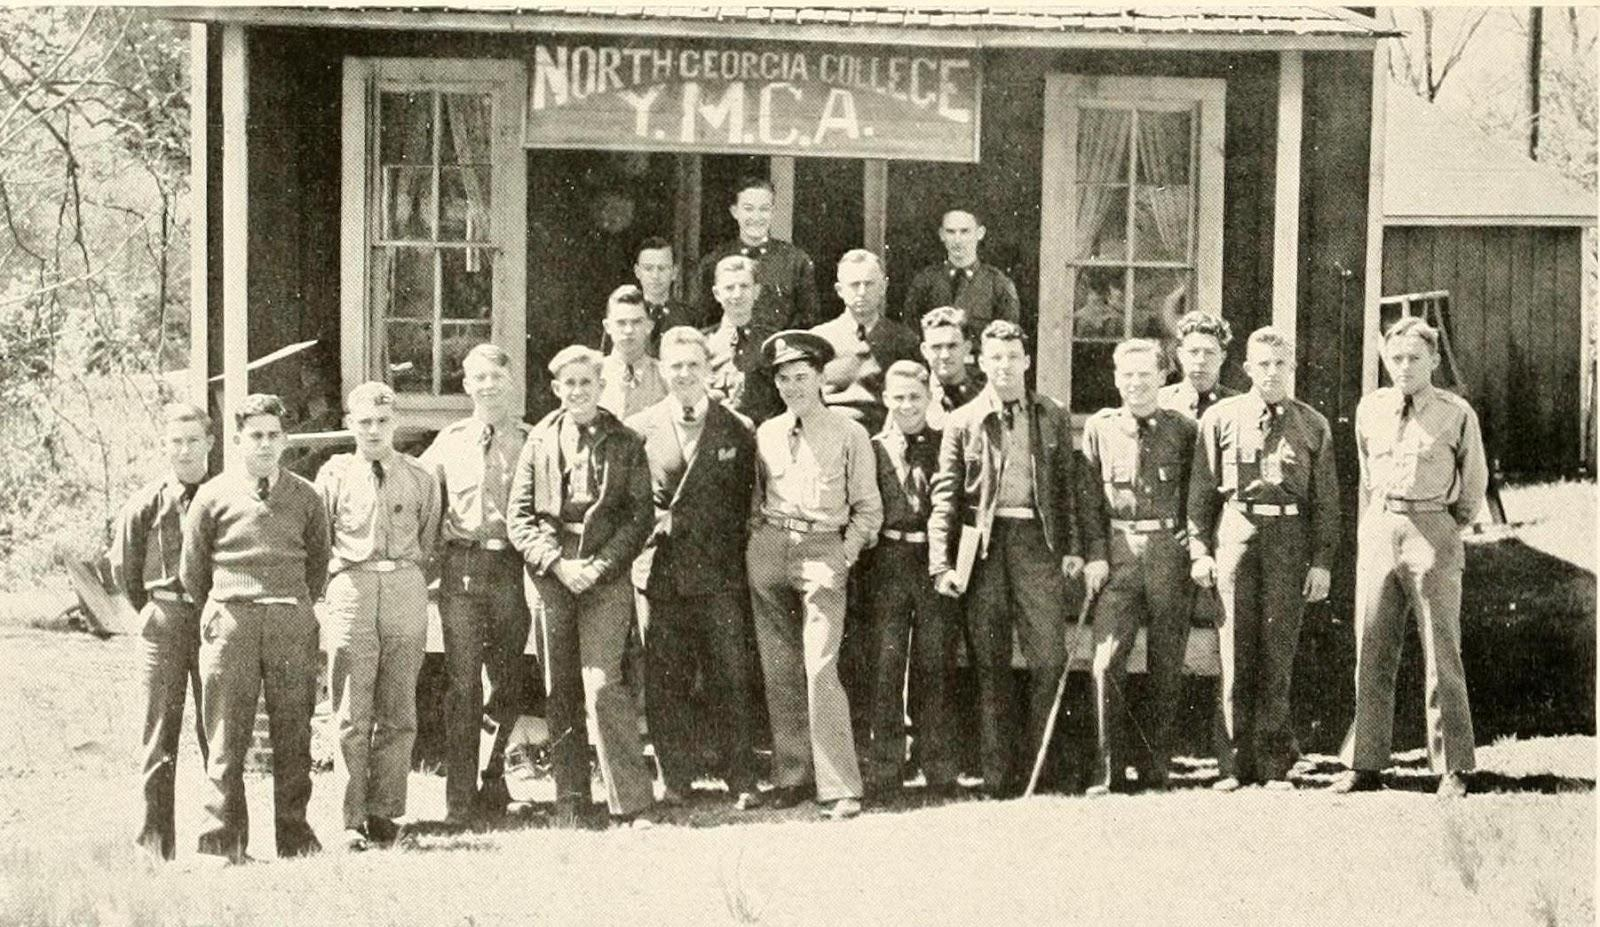 ymca history Ymca history volunteer founded and volunteer led, the ymca was established in london, england, in 1844 by george williams, a draper's shop assistant, to give young men an alternative to life on the streets.